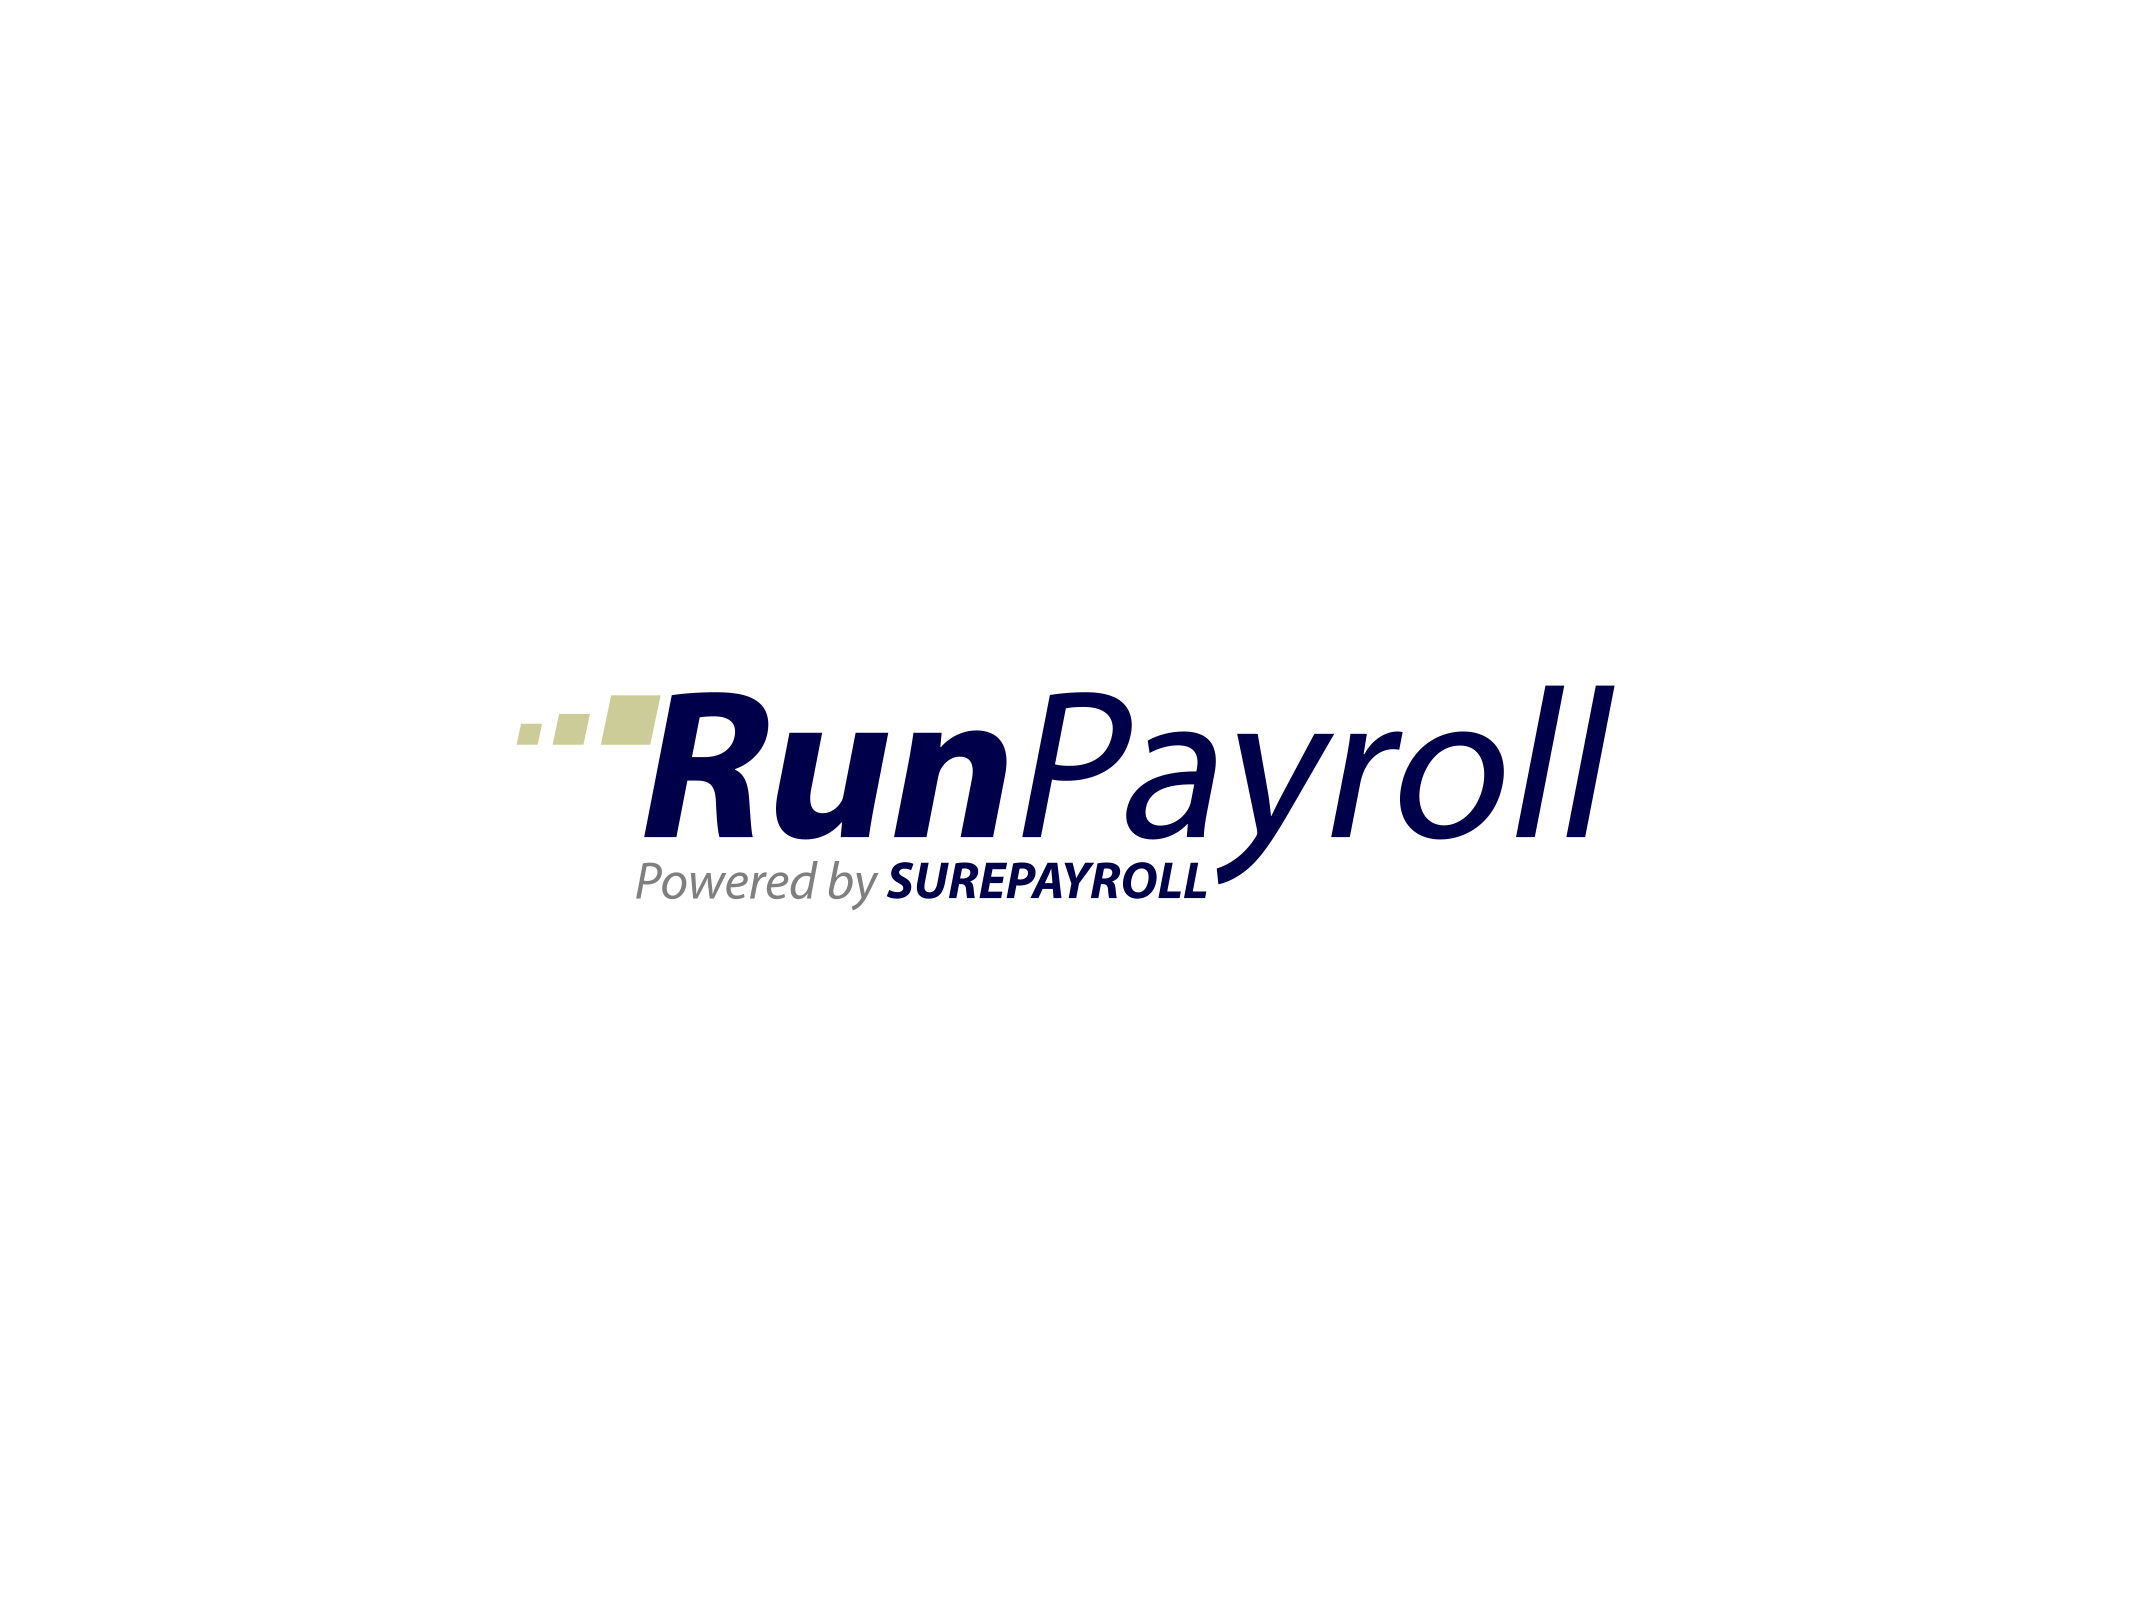 RunPayroll - Whether choosing to manage payroll or hand it off to us, RunPayroll is a great option. While offering a lot of features they were also one of the first easy-to-use web based payroll platforms.